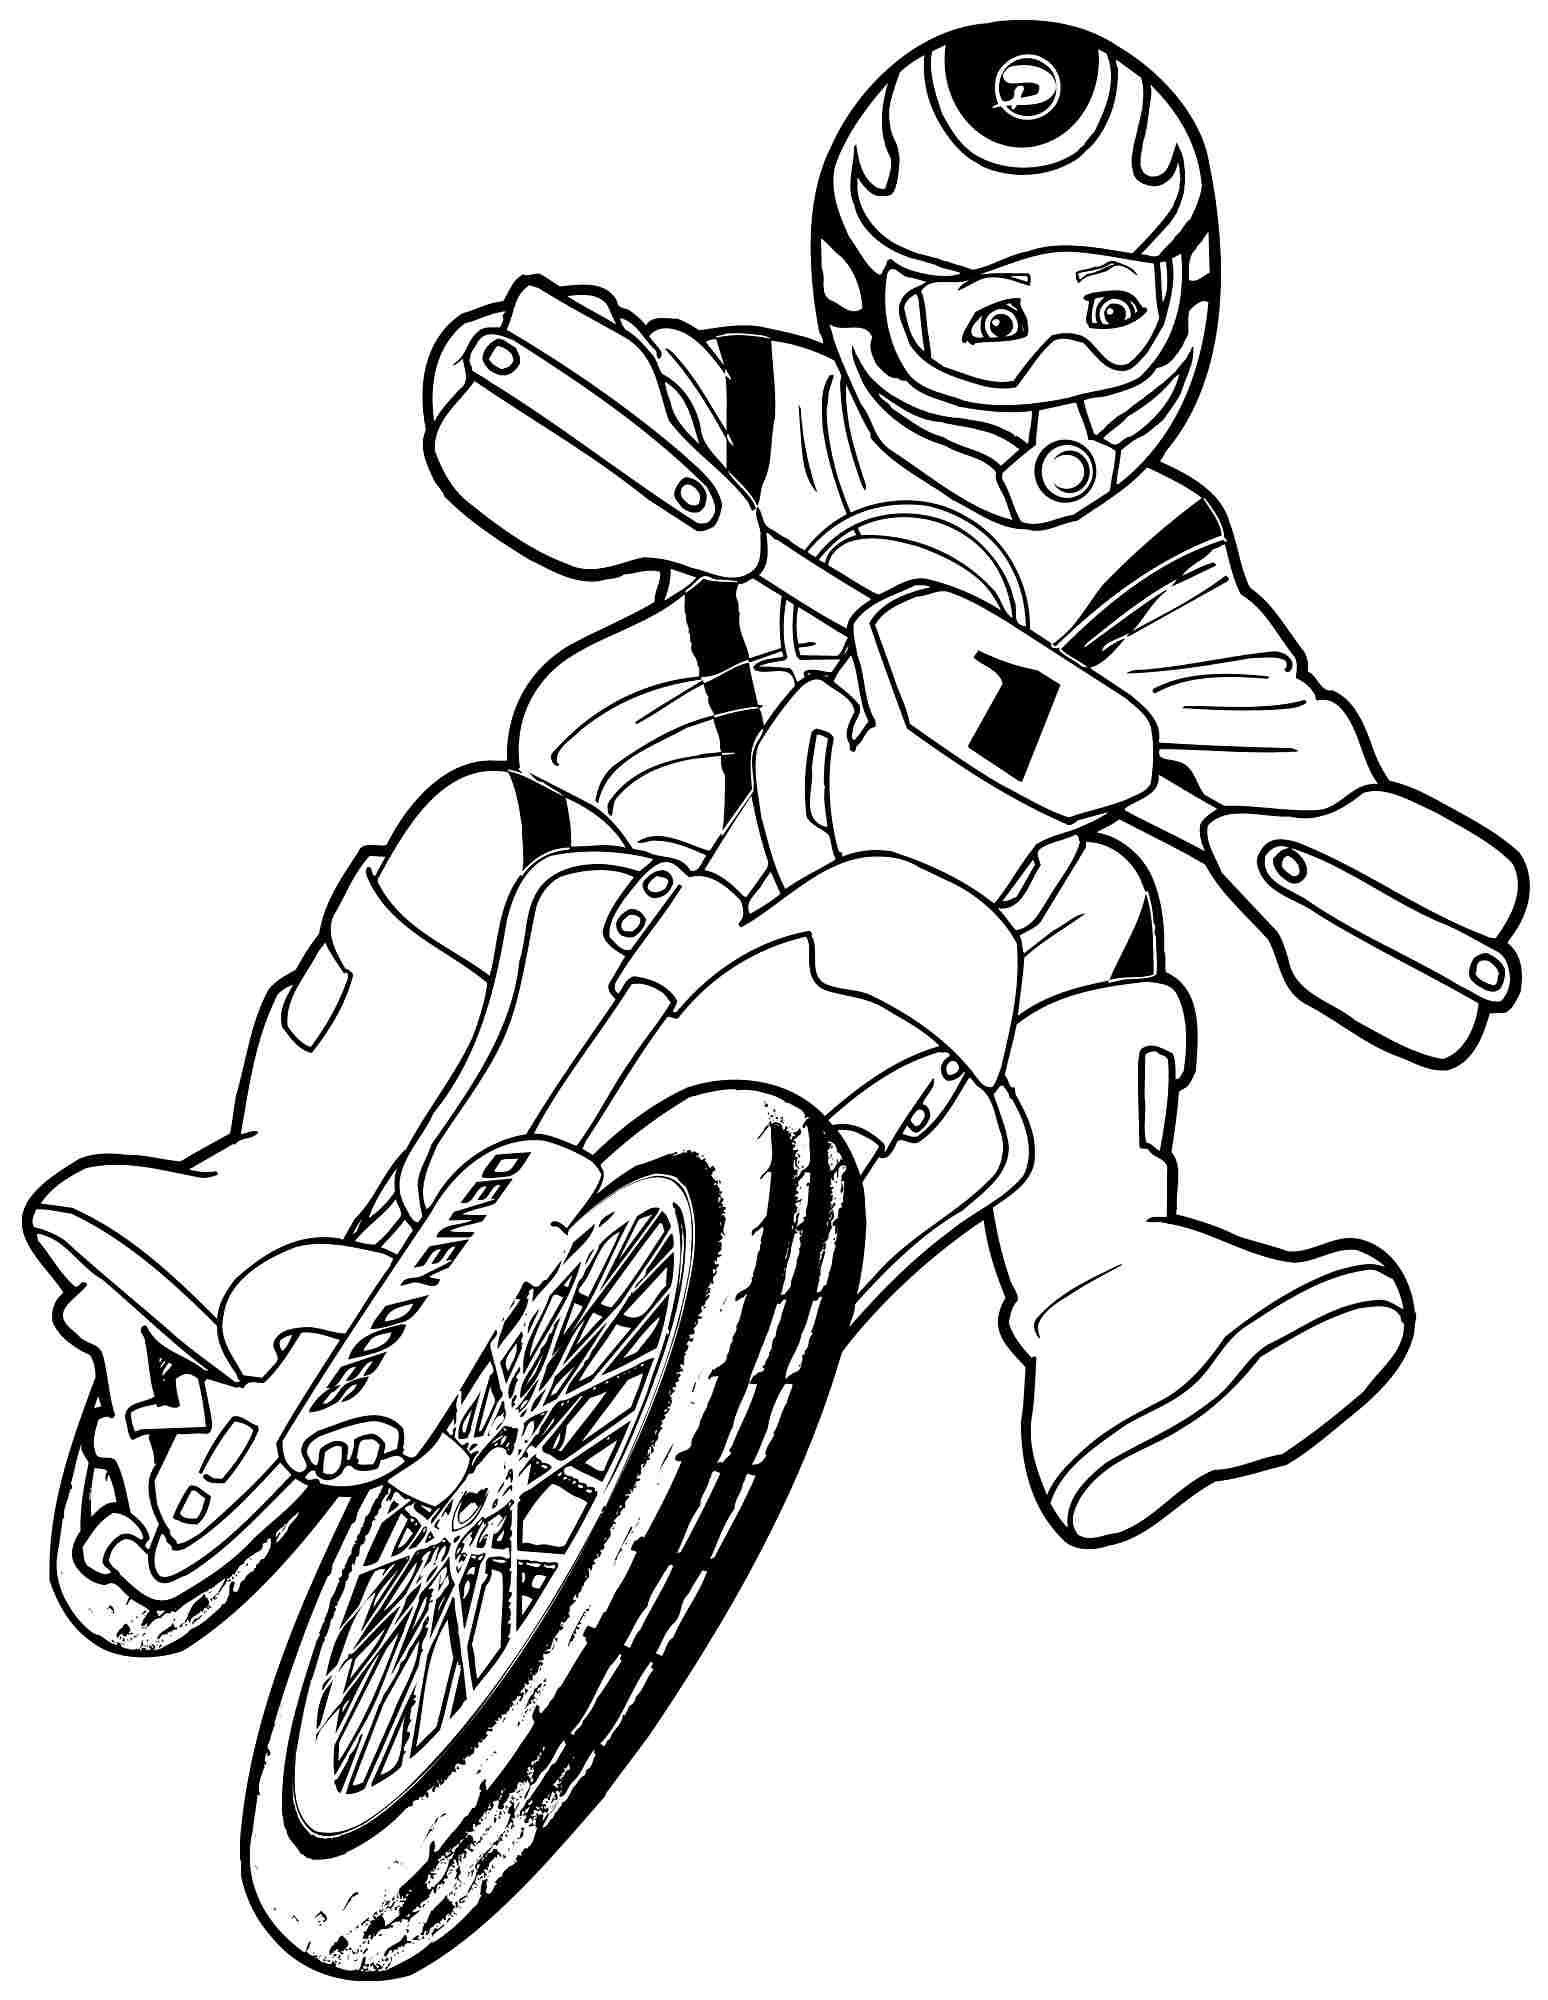 Free Transportation Motorcycle Colouring Pages For Kindergarten ...